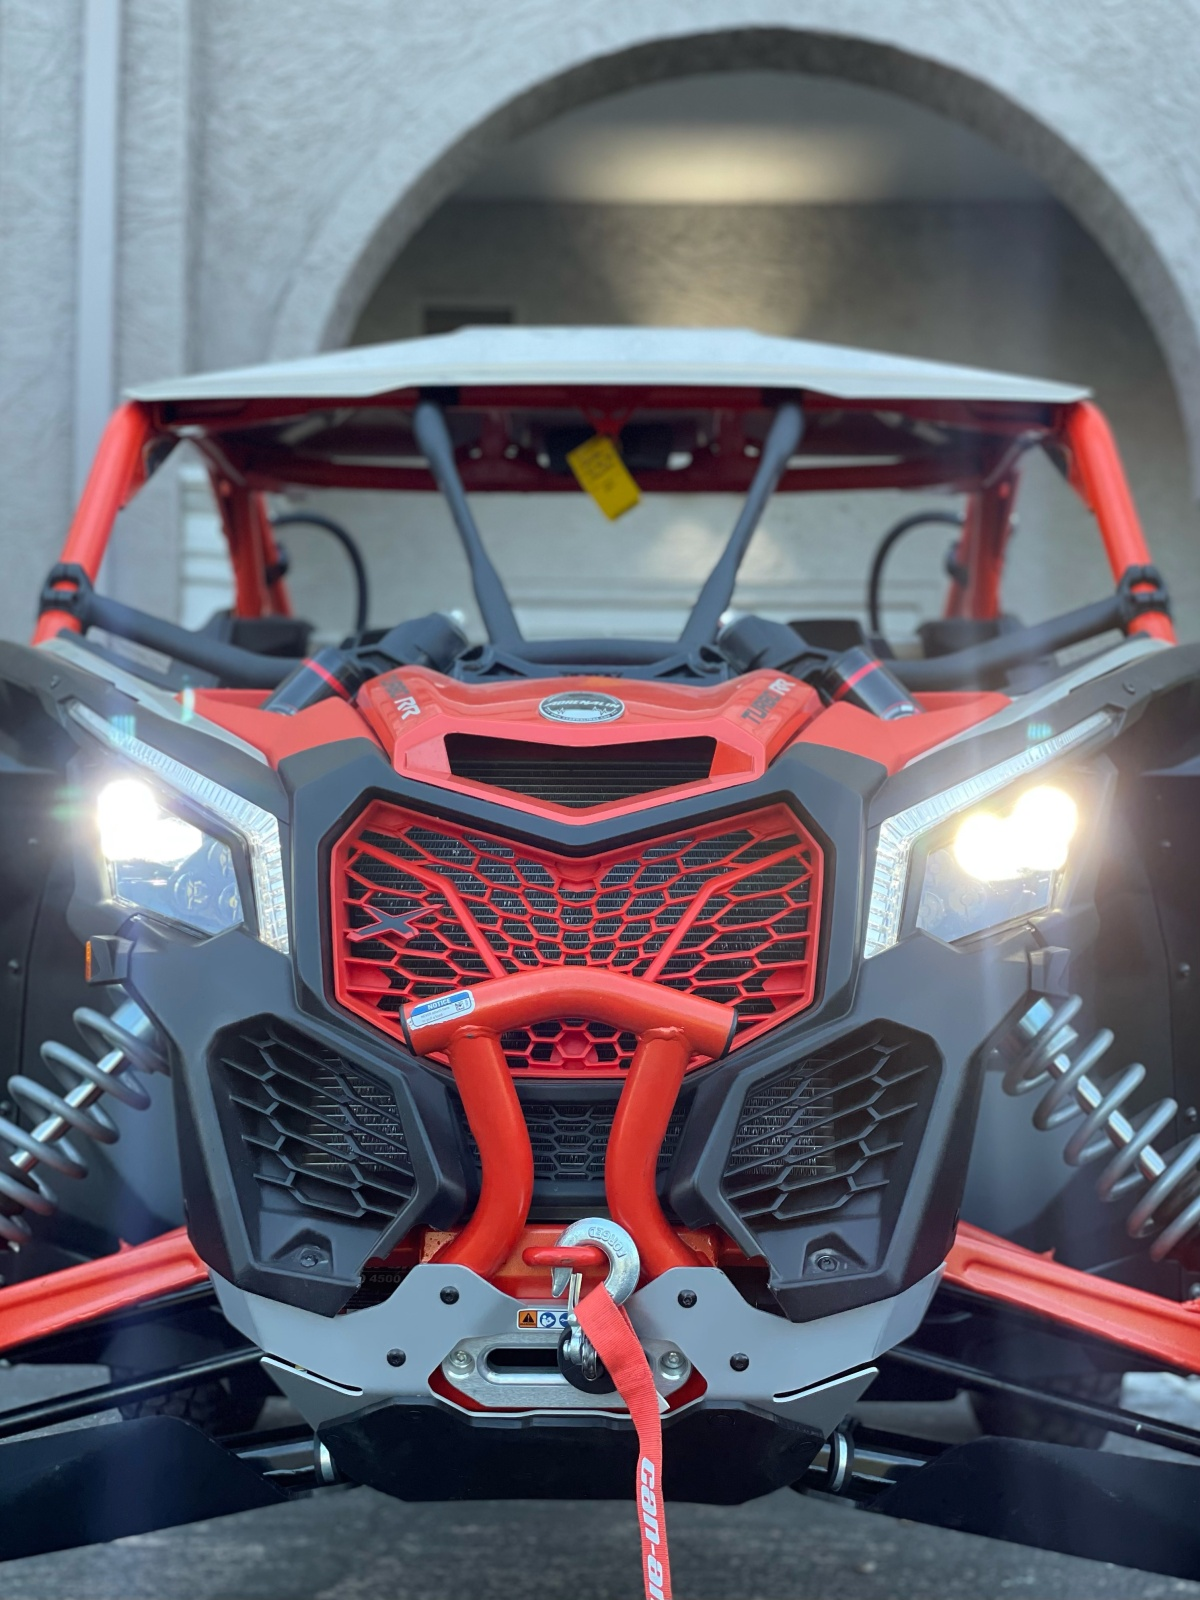 For Sale: 2021 Can-Am Maverick X3 RC RR 180 miles trades considered  - photo6